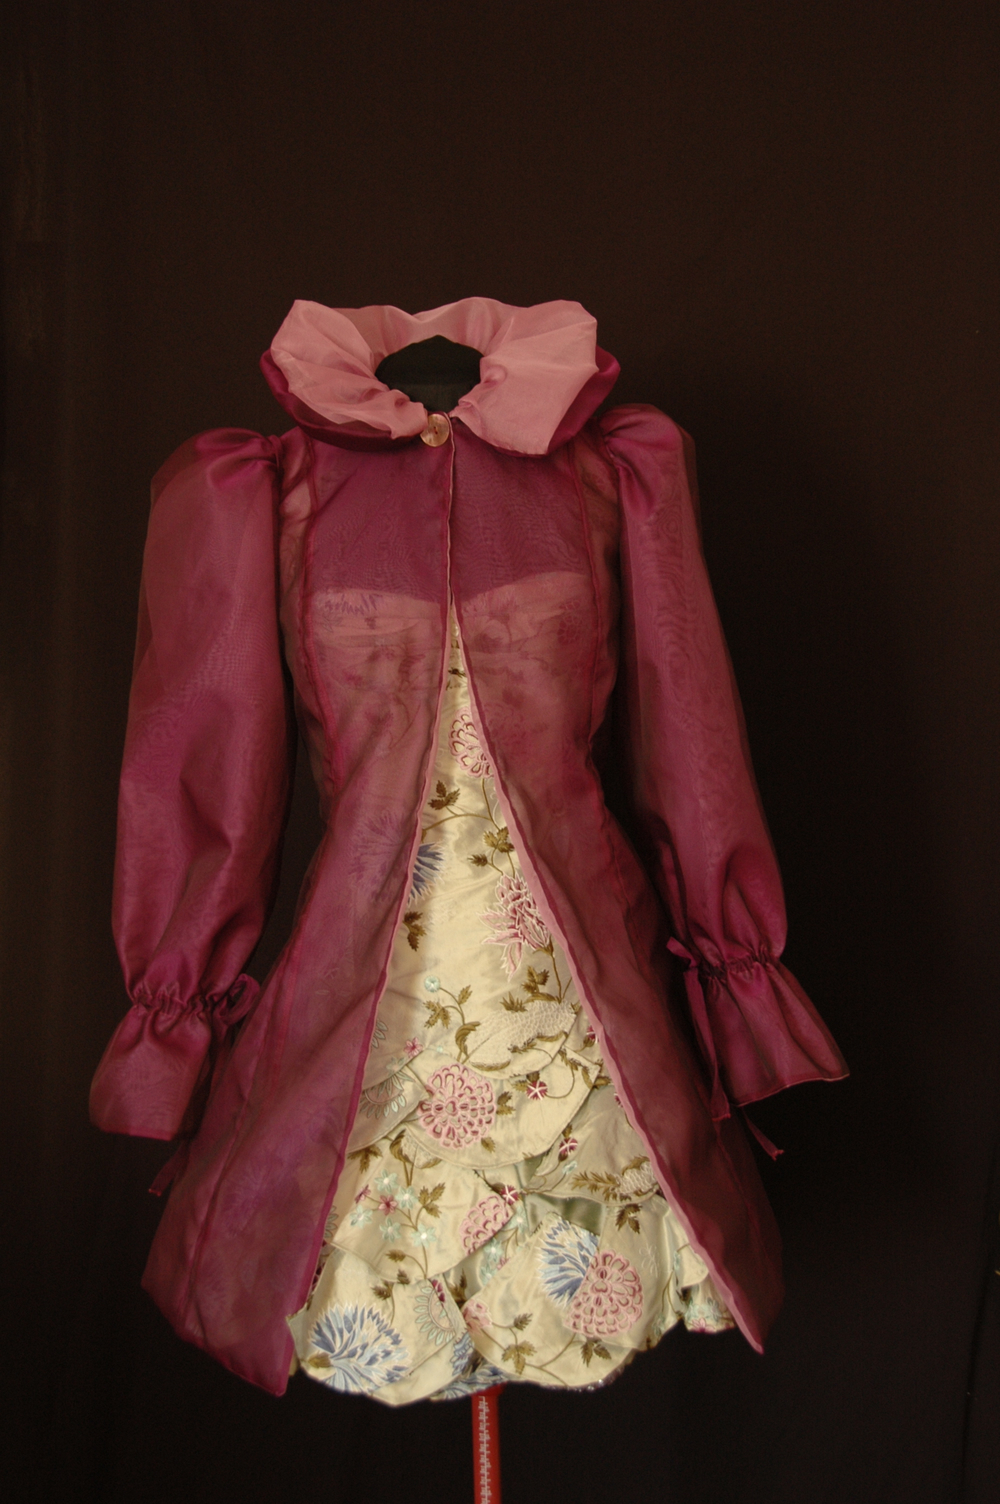 Manteau de cocktail court en organza de soie prune et rose réversible